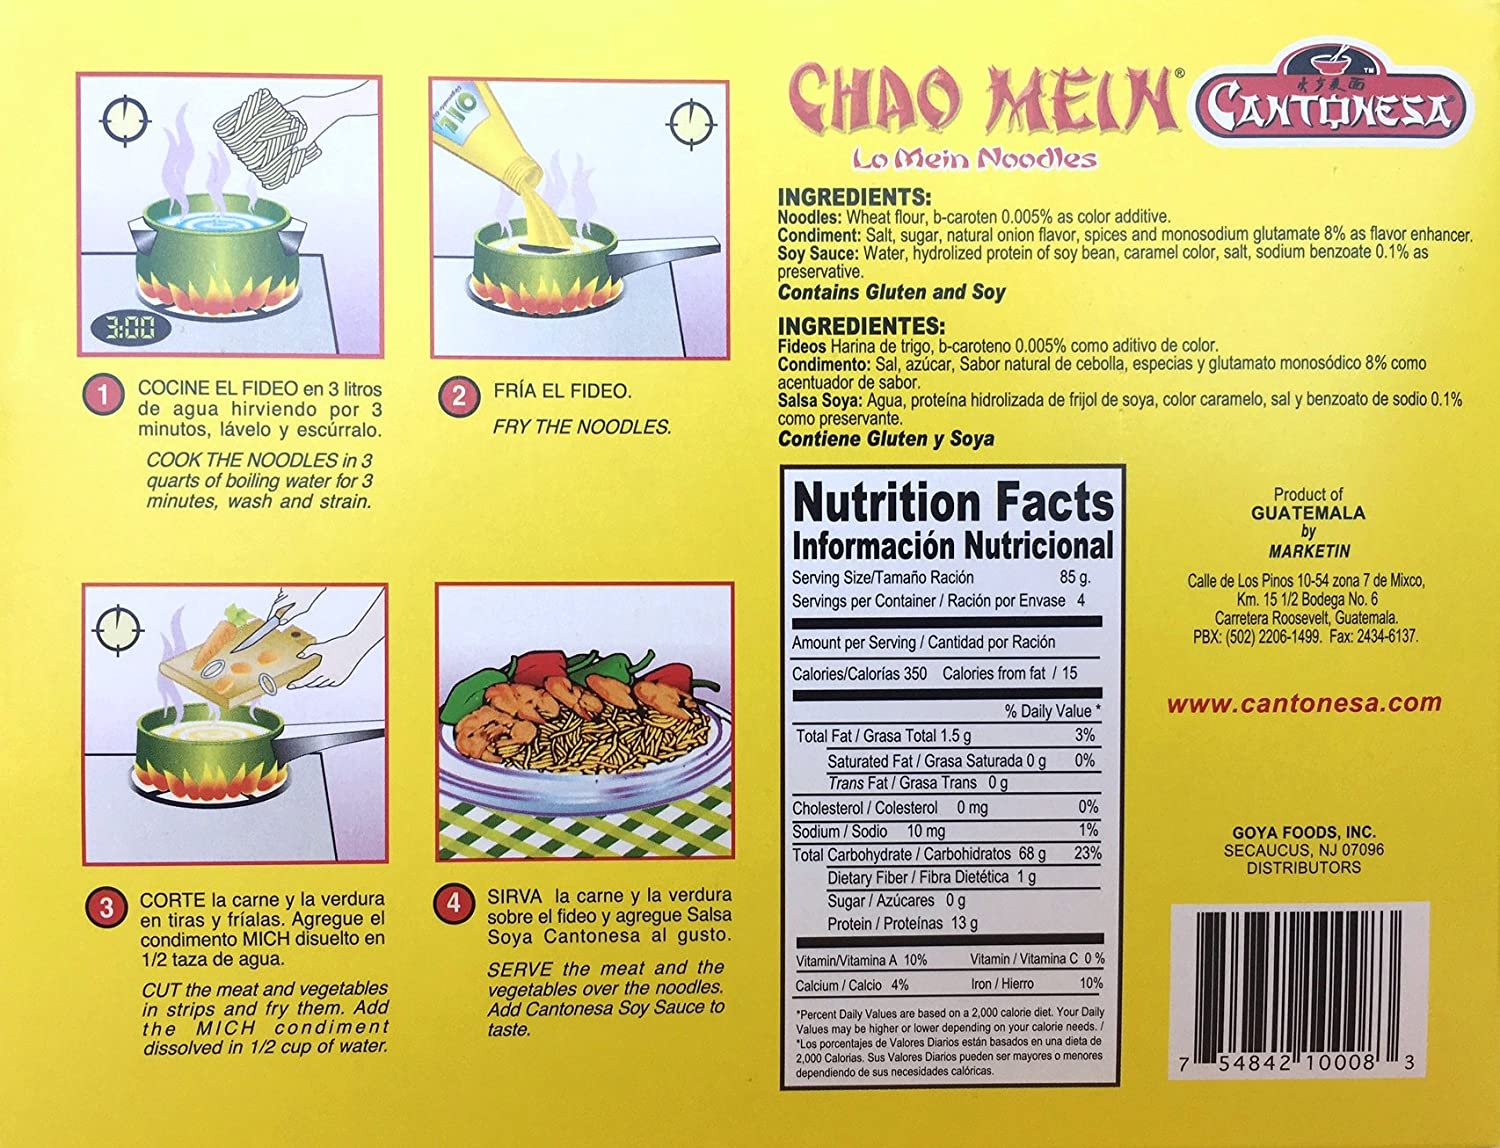 Amazon.com : Goya Foods Chao Mein Cantonesa, 12 Ounce (Pack of 24) : Grocery & Gourmet Food